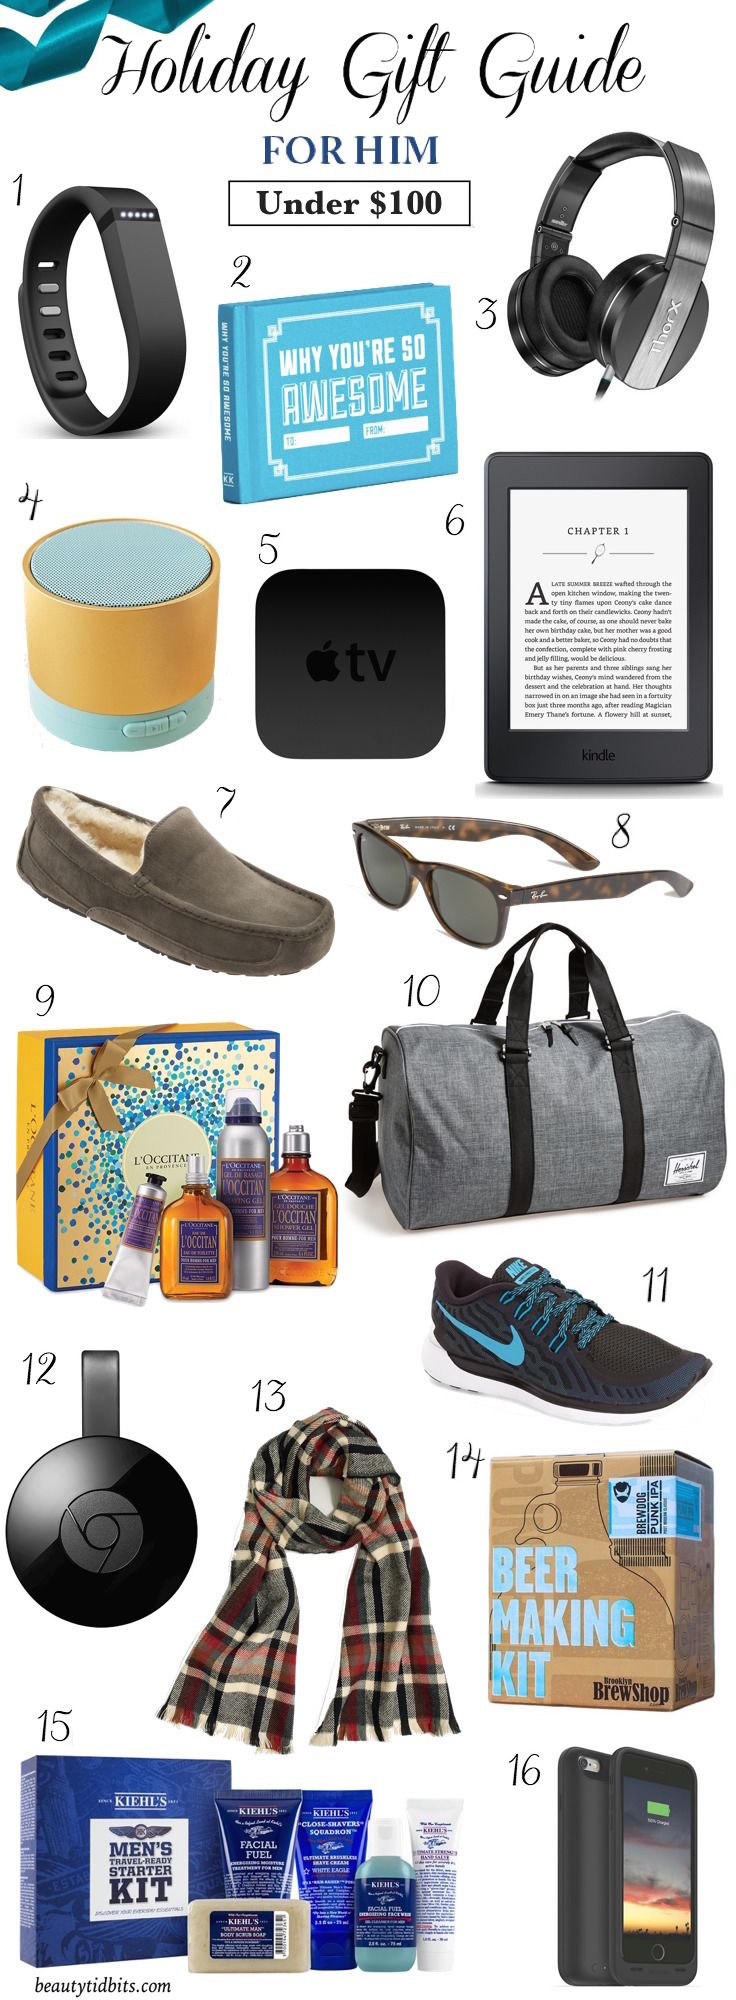 Best 25+ Gifts ideas for men ideas on Pinterest | Pandora for men ...